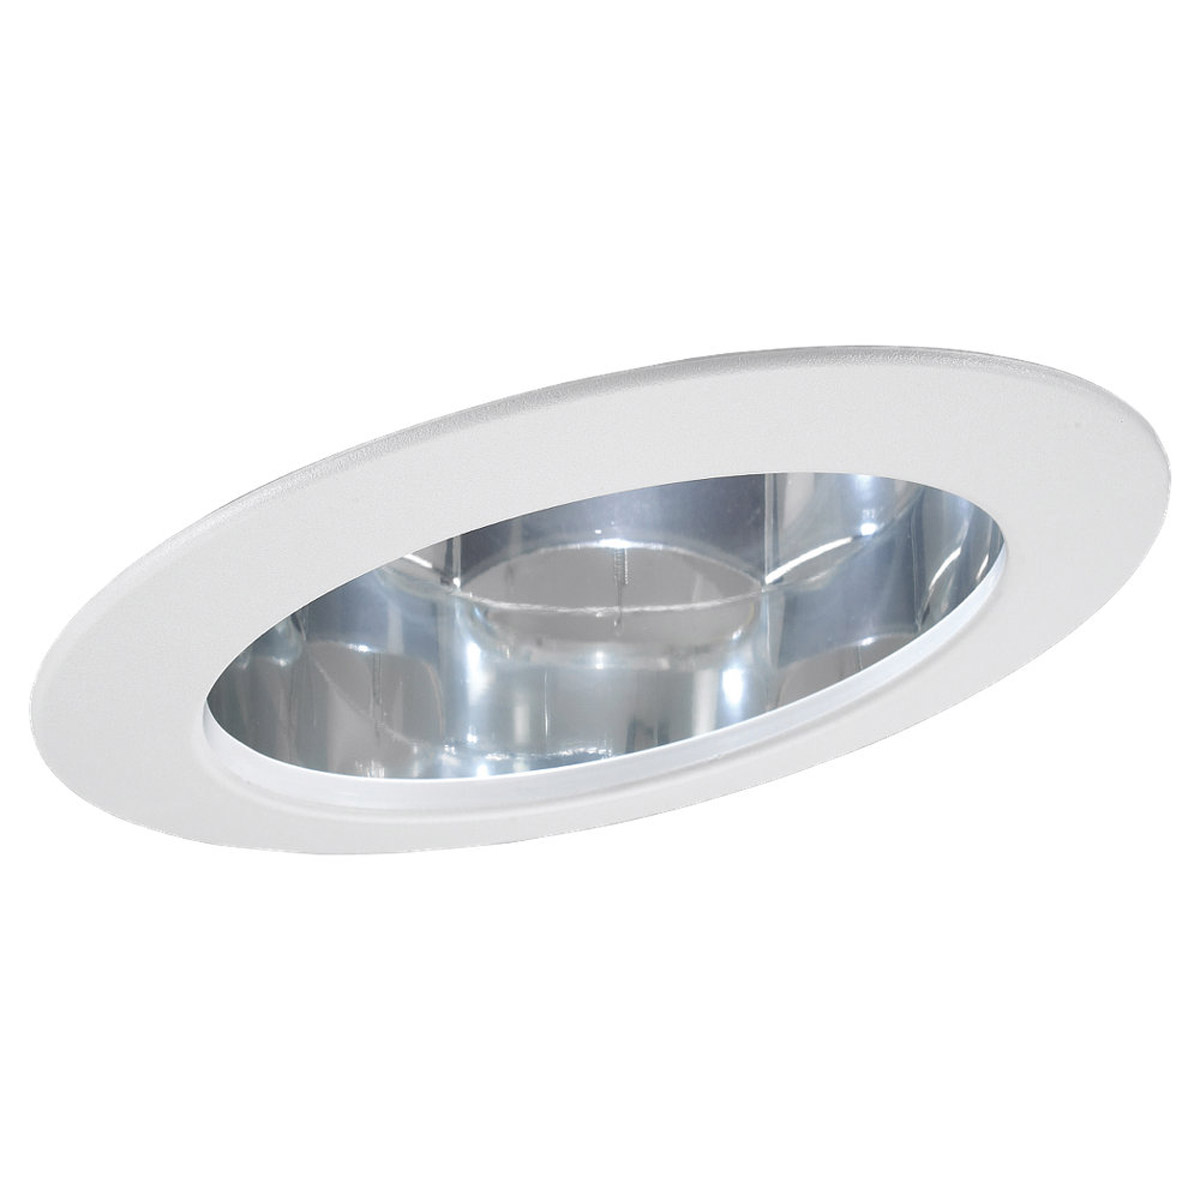 Sea Gull Lighting Signature Recessed Trim Only in Polished Aluminum 1122-22 photo